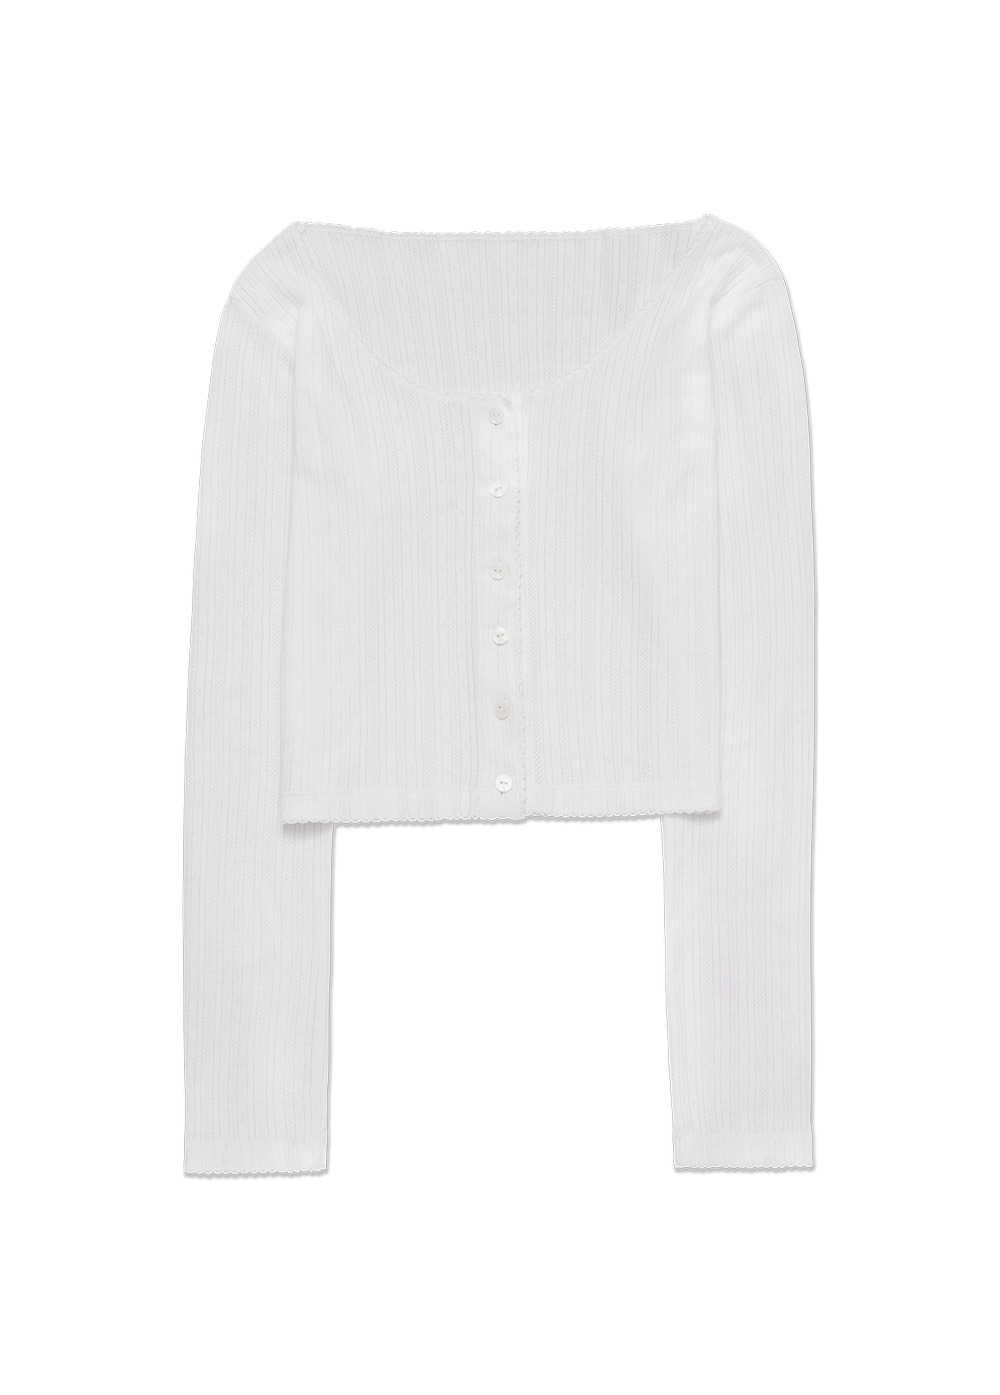 MARITHE X DIAGONAL WAVY BUTTON T-SHIRT white